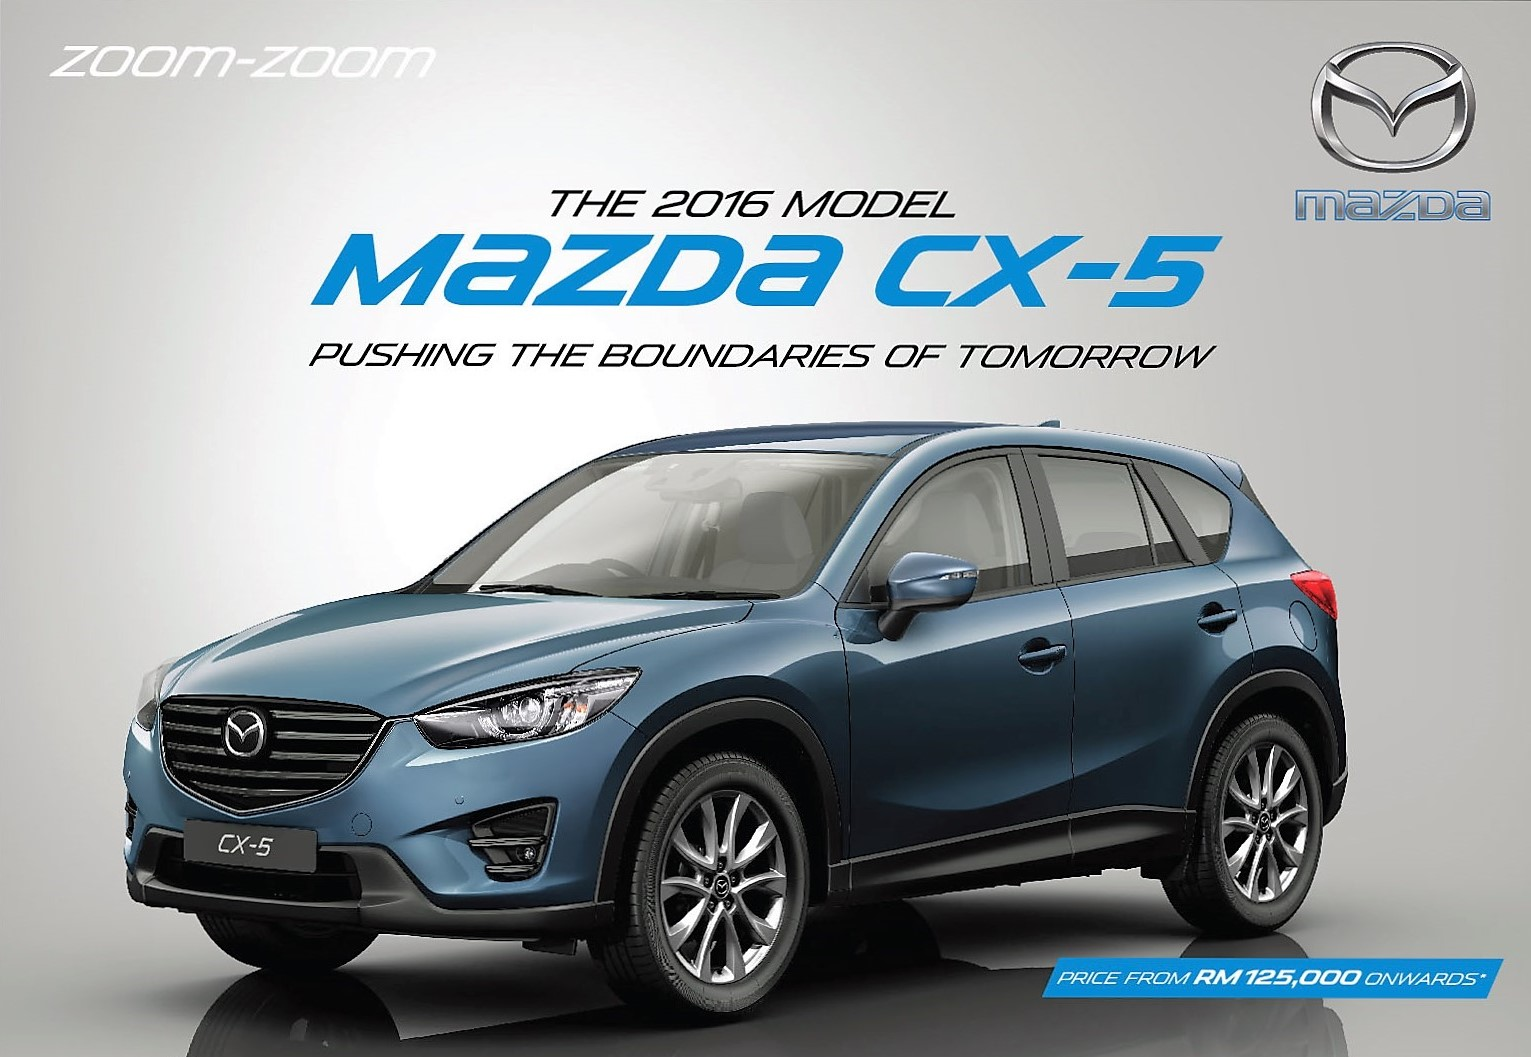 bermaz holding mazda zoom zoom carnival at its outlets - autoworld